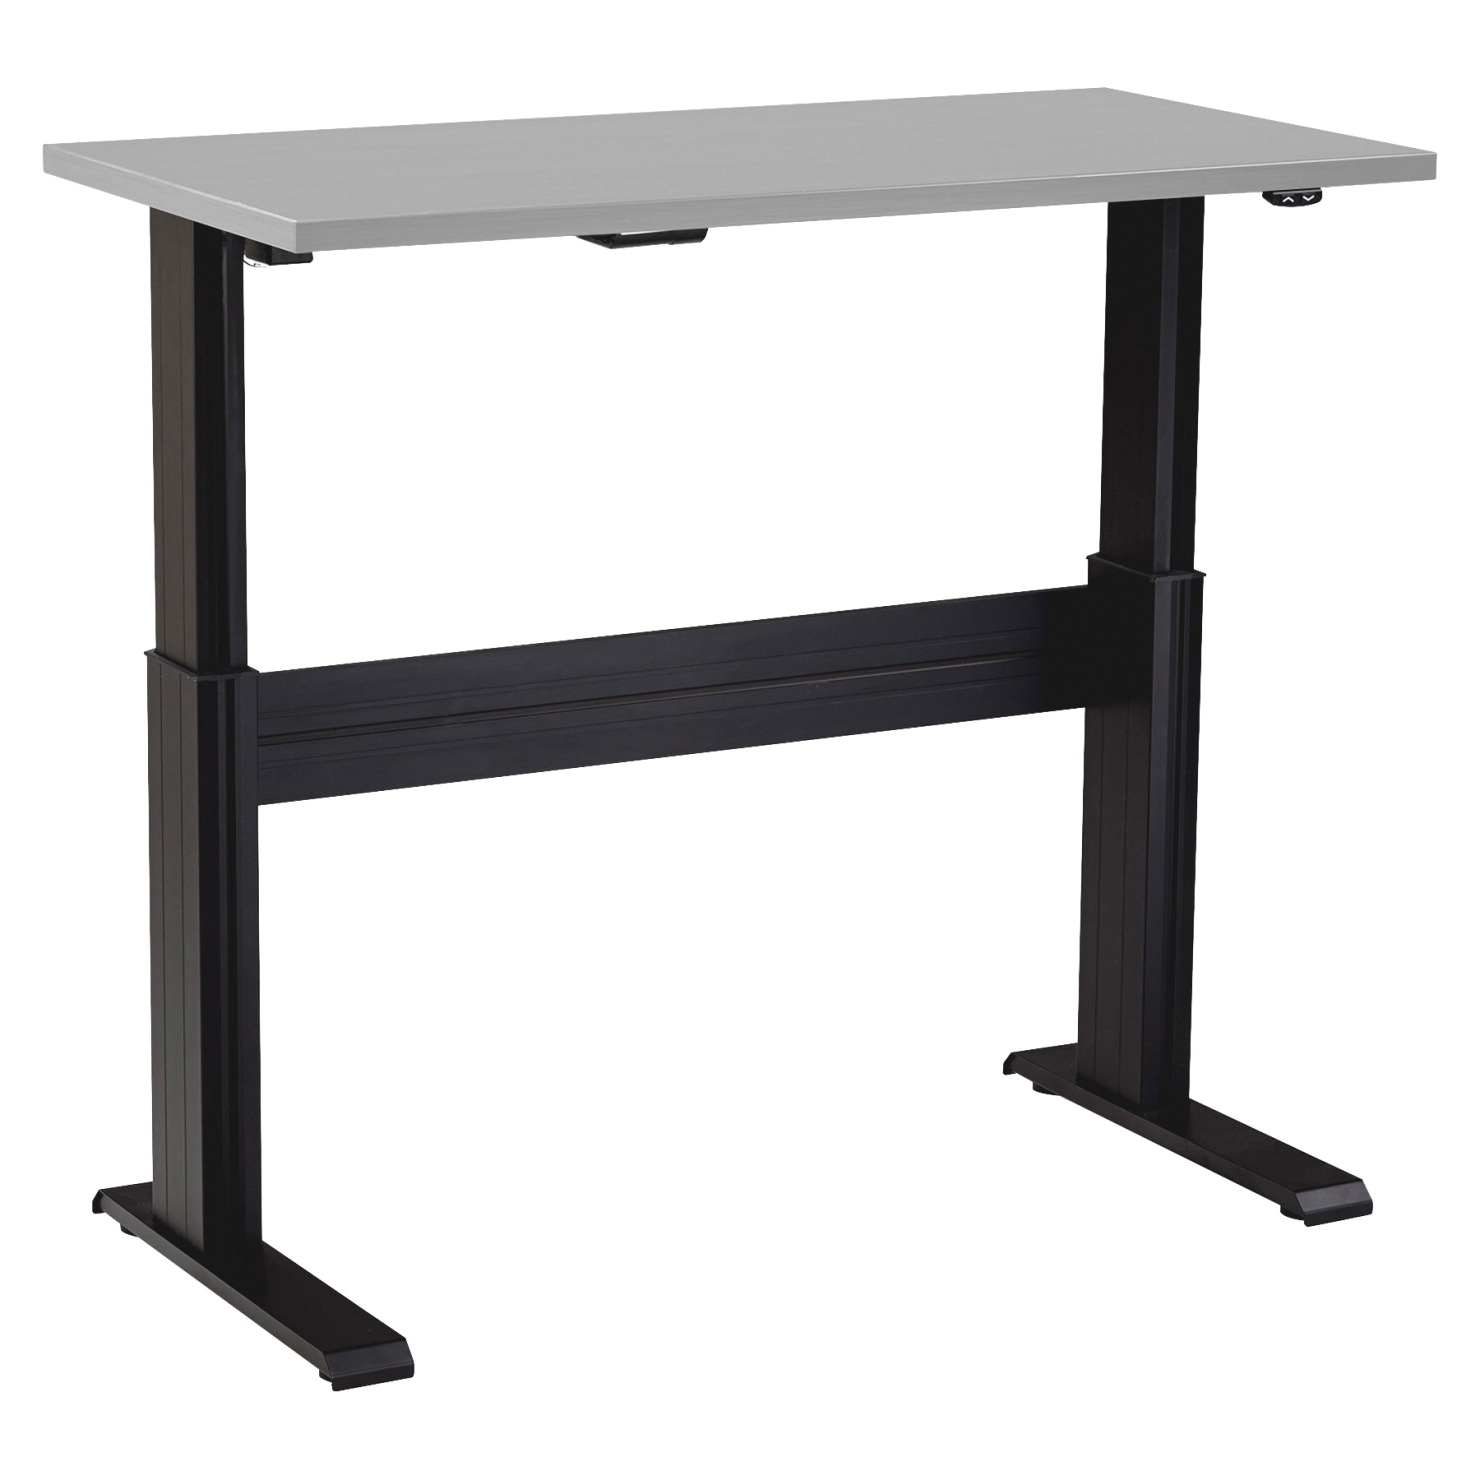 Lorell electric adjustable table base 48 in black school specialty market - Table basse ajustable ...